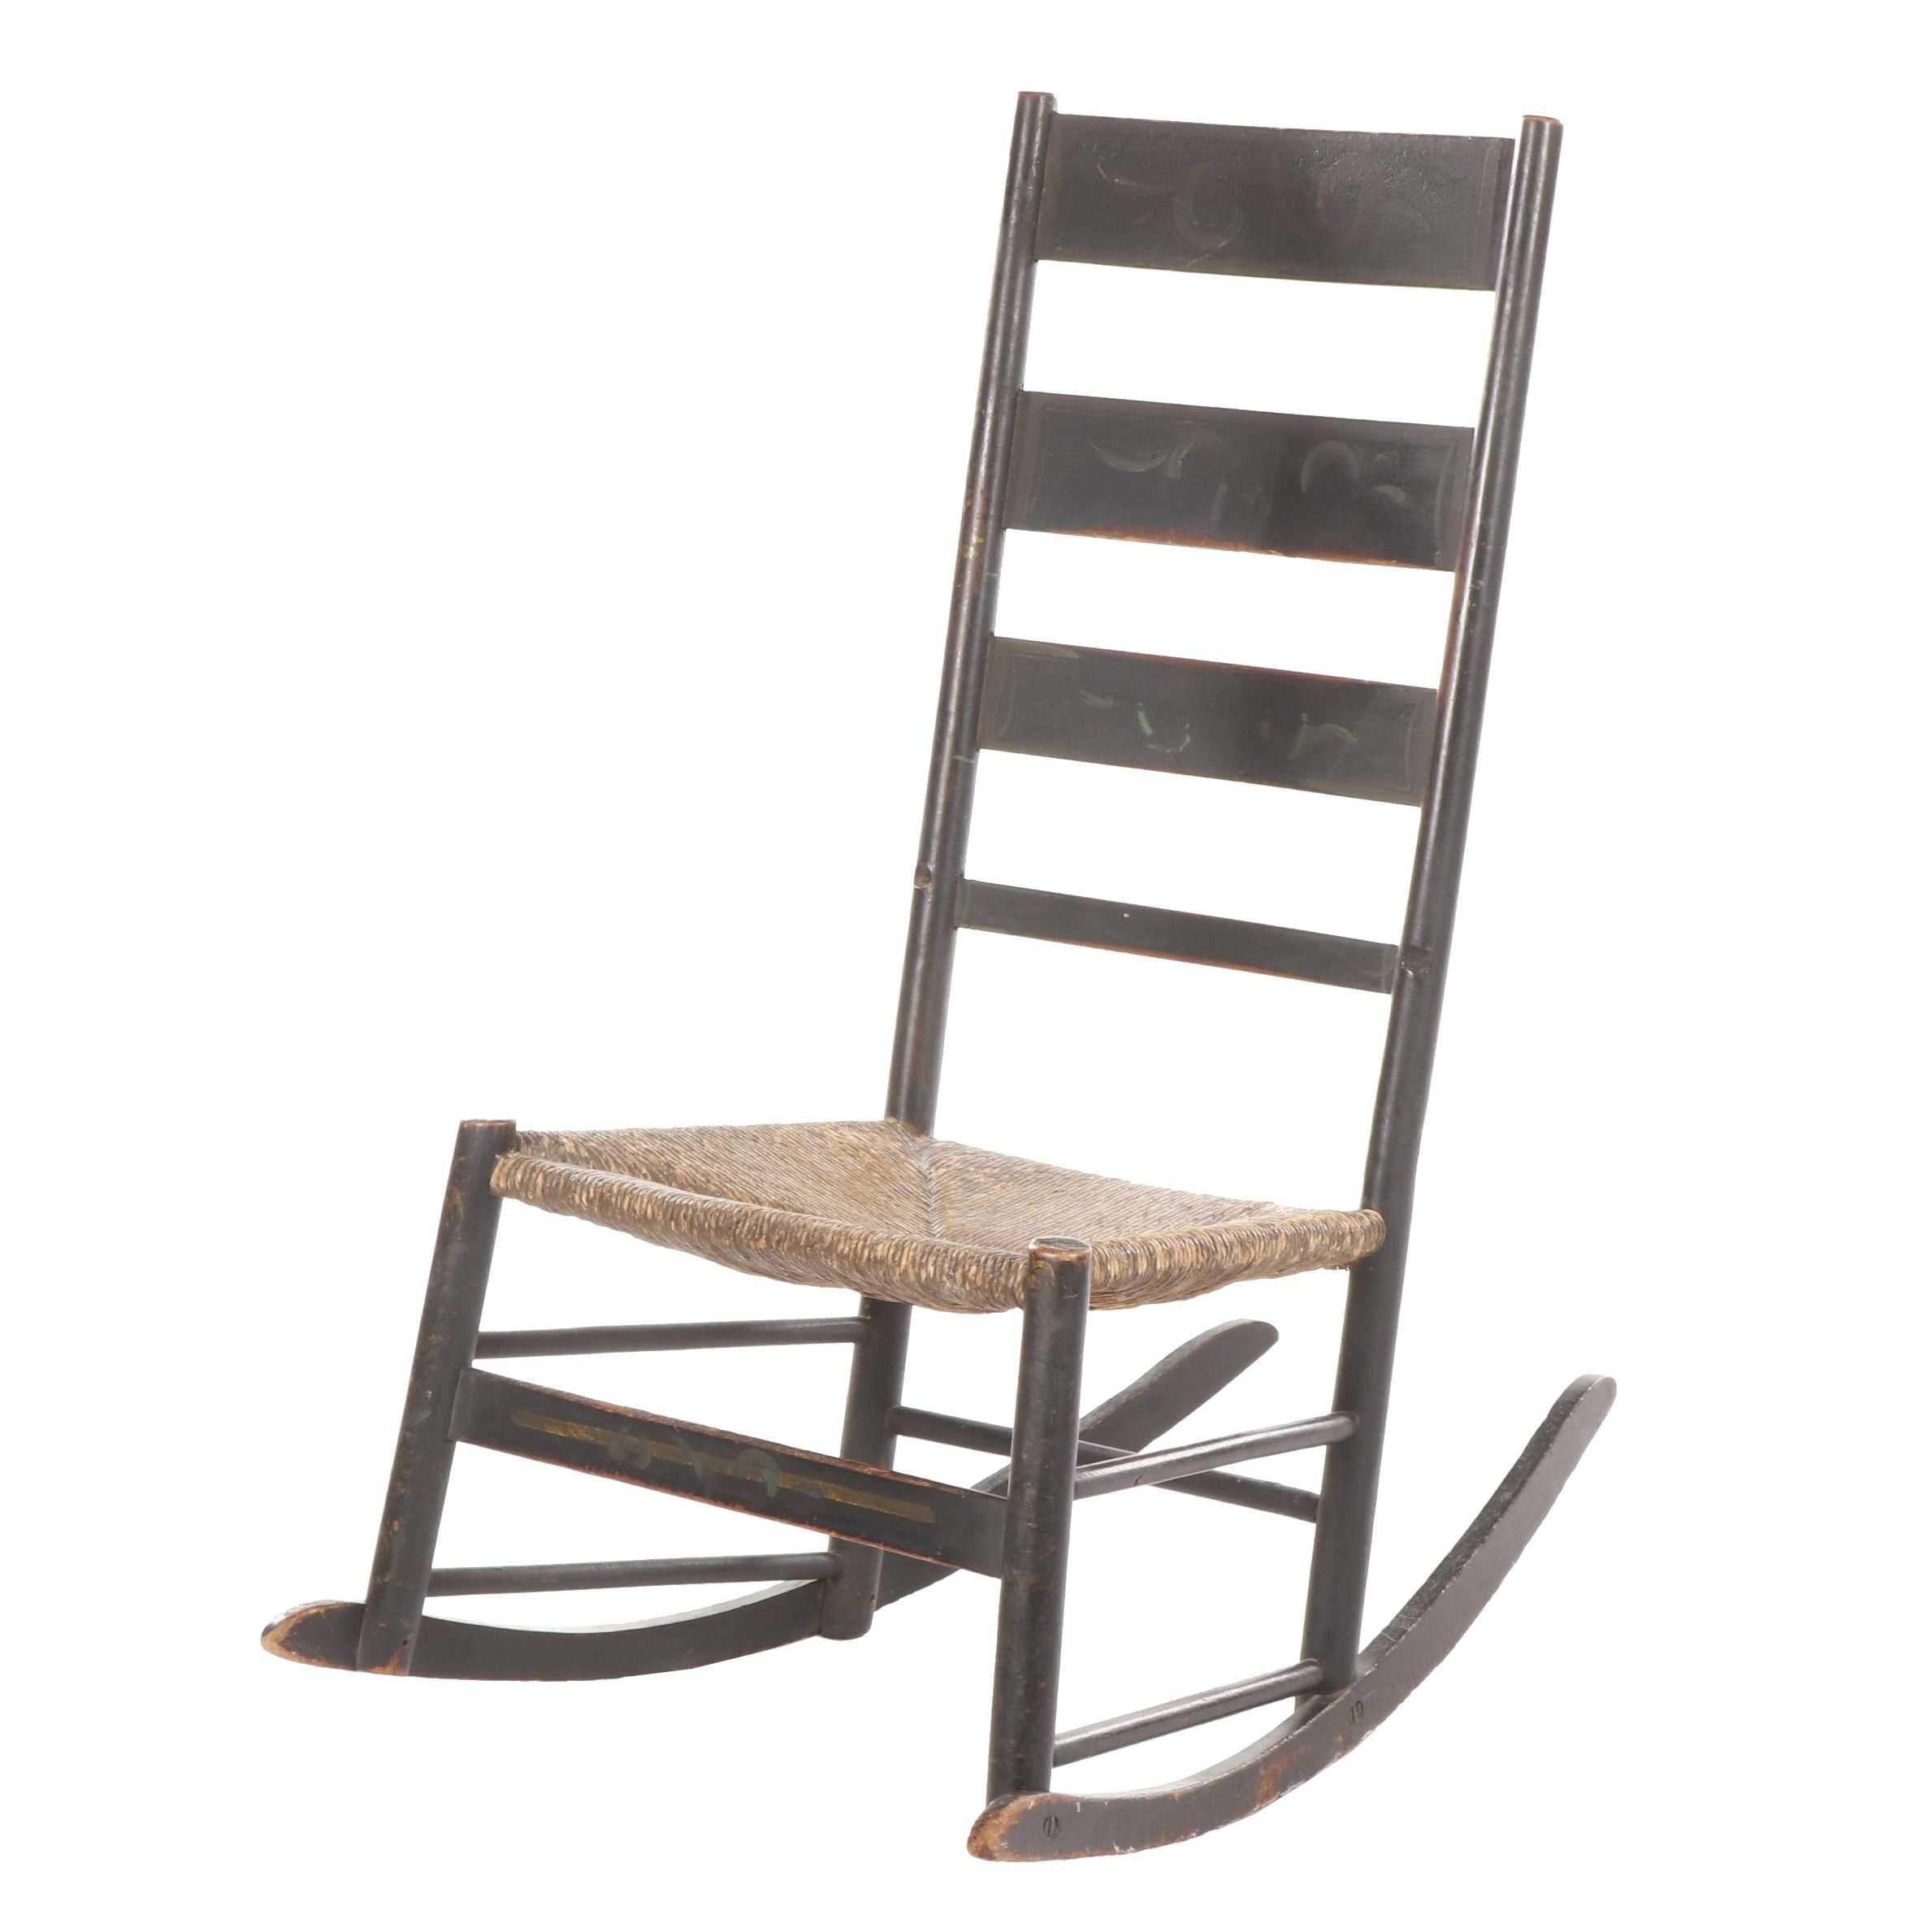 Paint-Decorated Ebonized Wooden Rocking Chair with Rush Seat, 19th Century